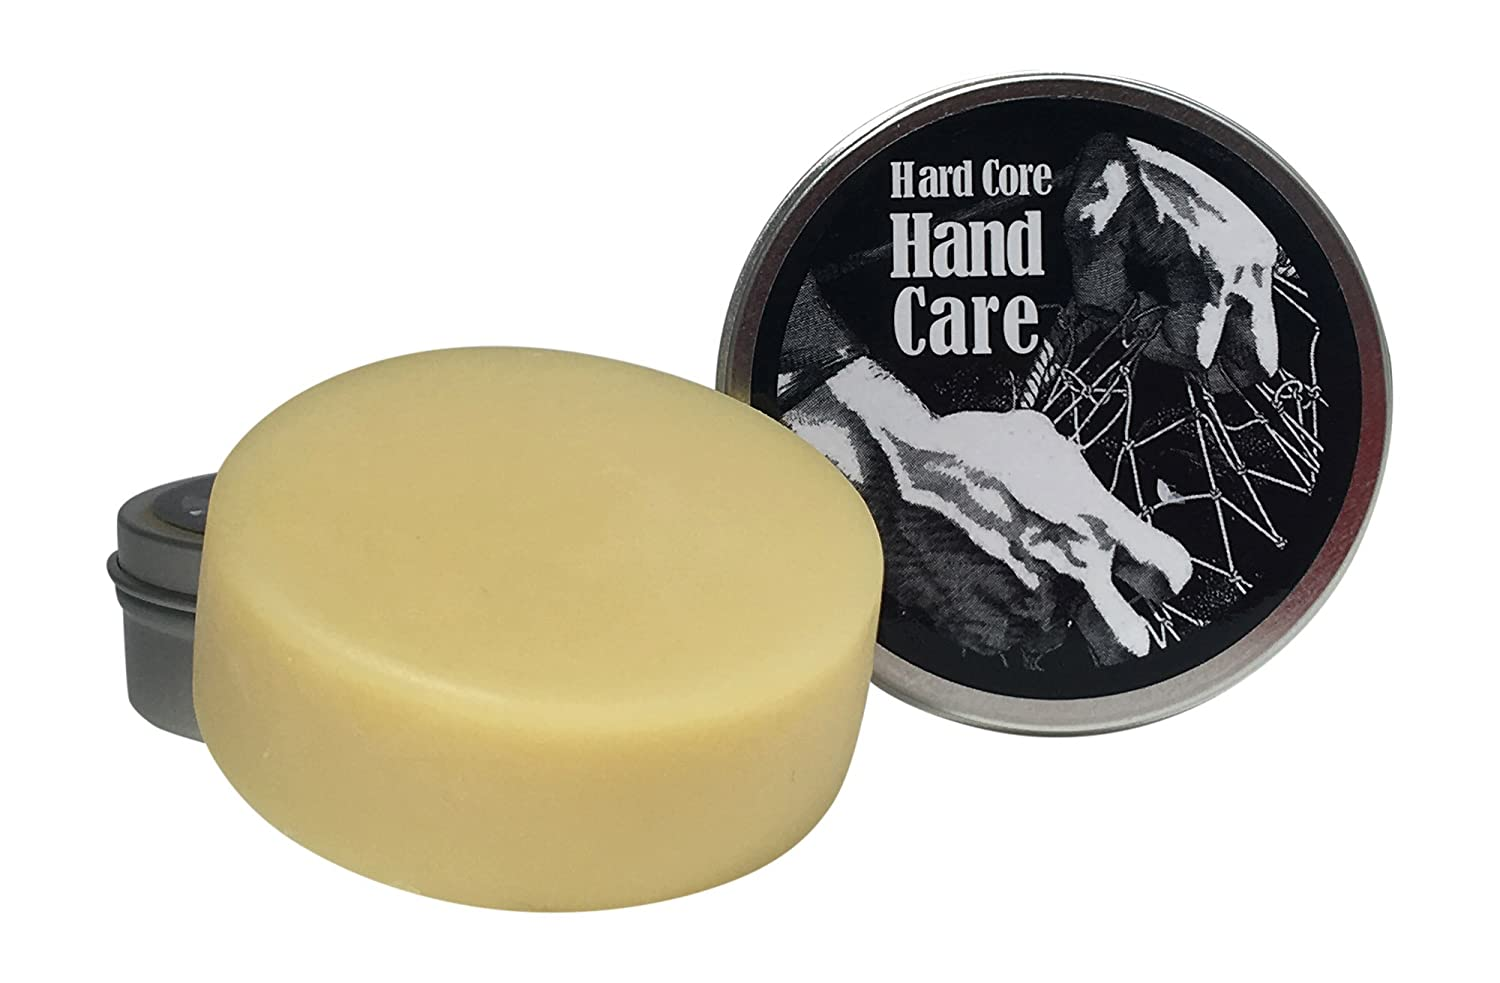 Hard Core Hand Care Fragrant Hand Balm (SeaBreeze) - Scented Natural Relief Salve - Pure Essential Oil Formulated